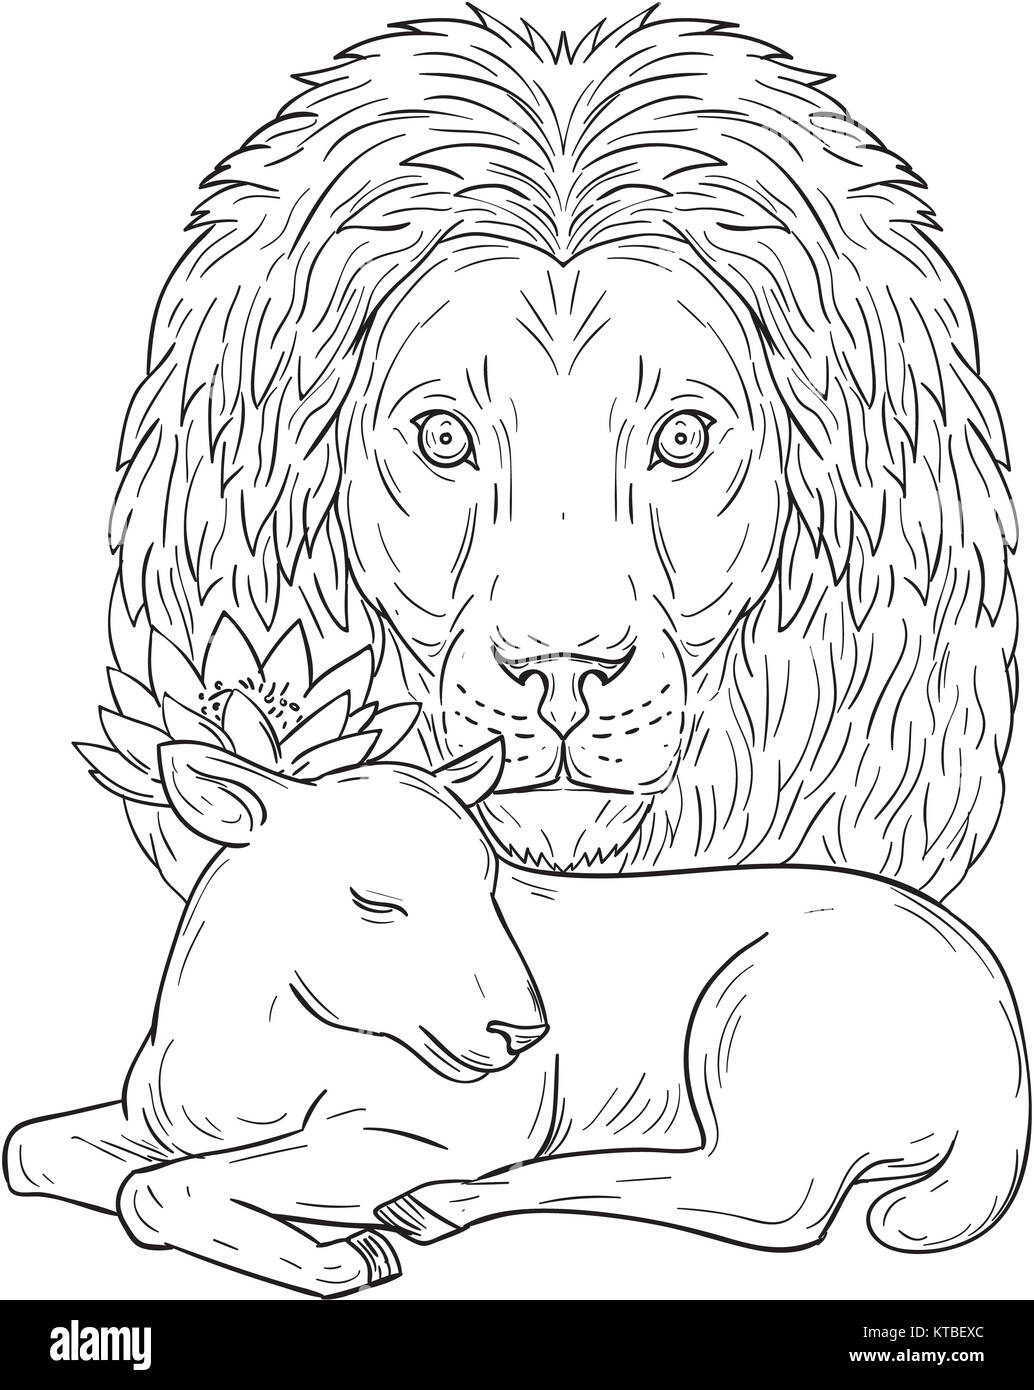 Lion Watching Over Sleeping Lamb Drawing Stock Photo 169898244 Alamy